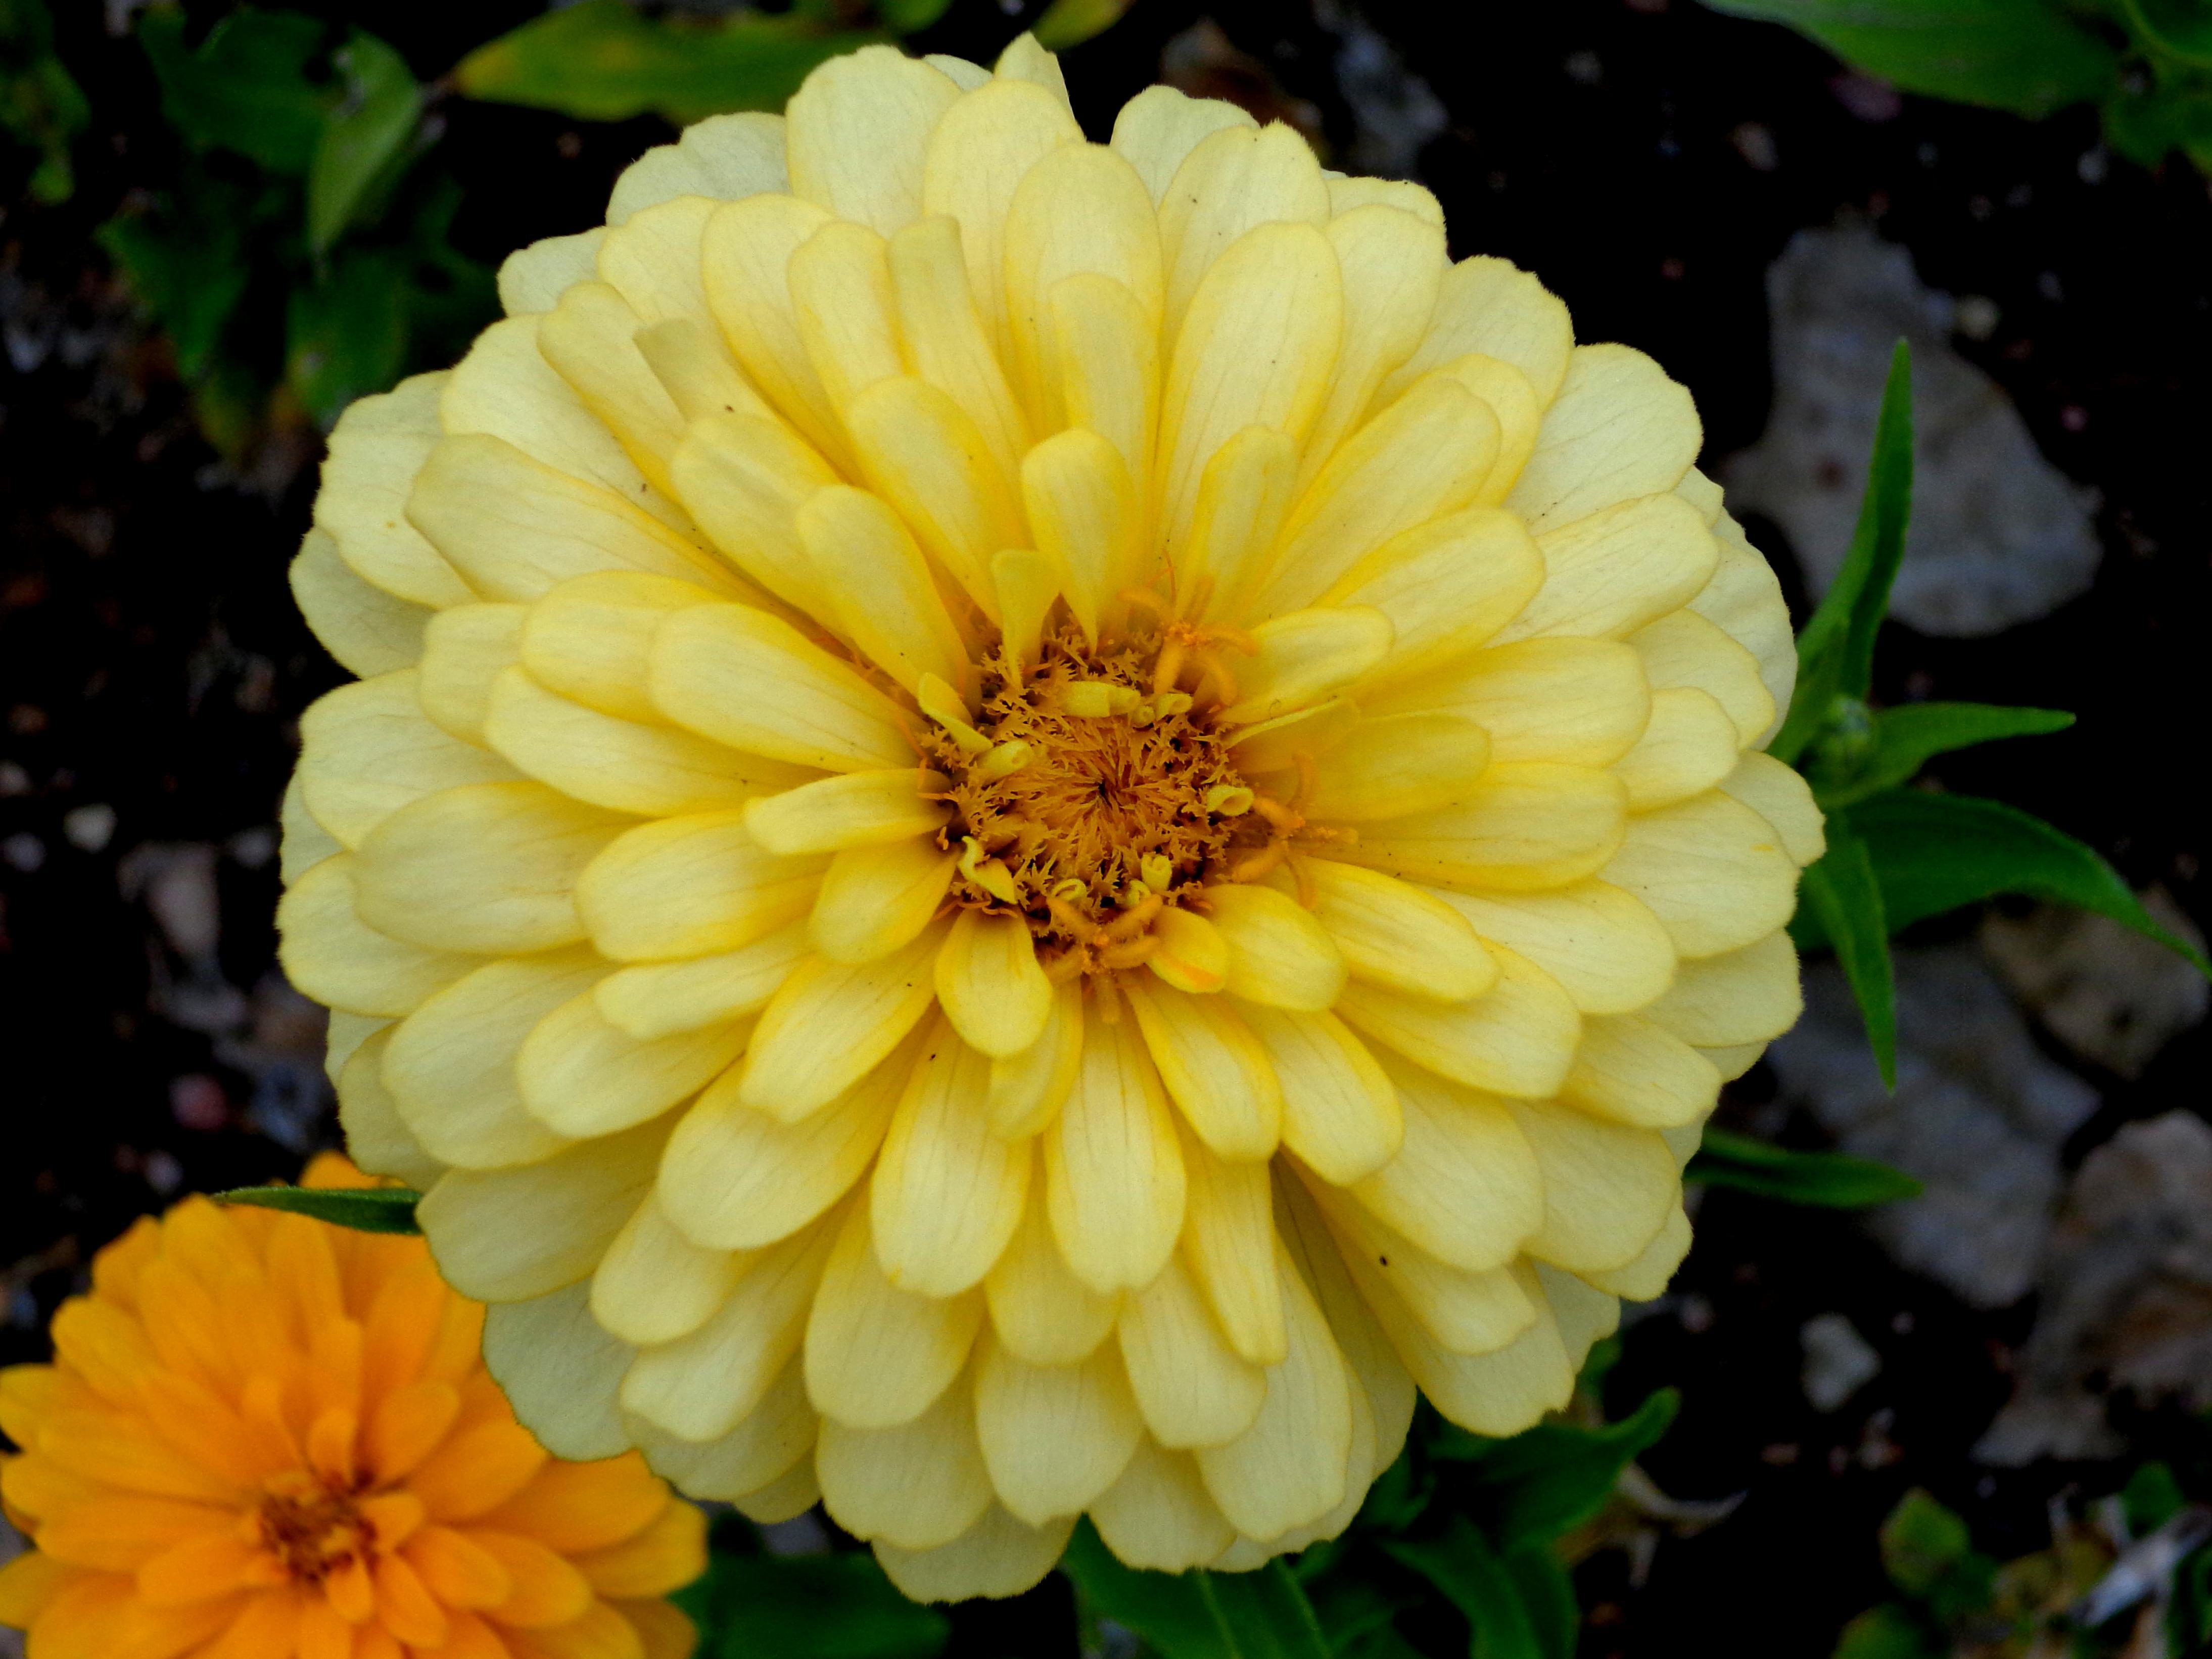 Free picture yellow flower zinnia flower yellow flower zinnia flower mightylinksfo Choice Image